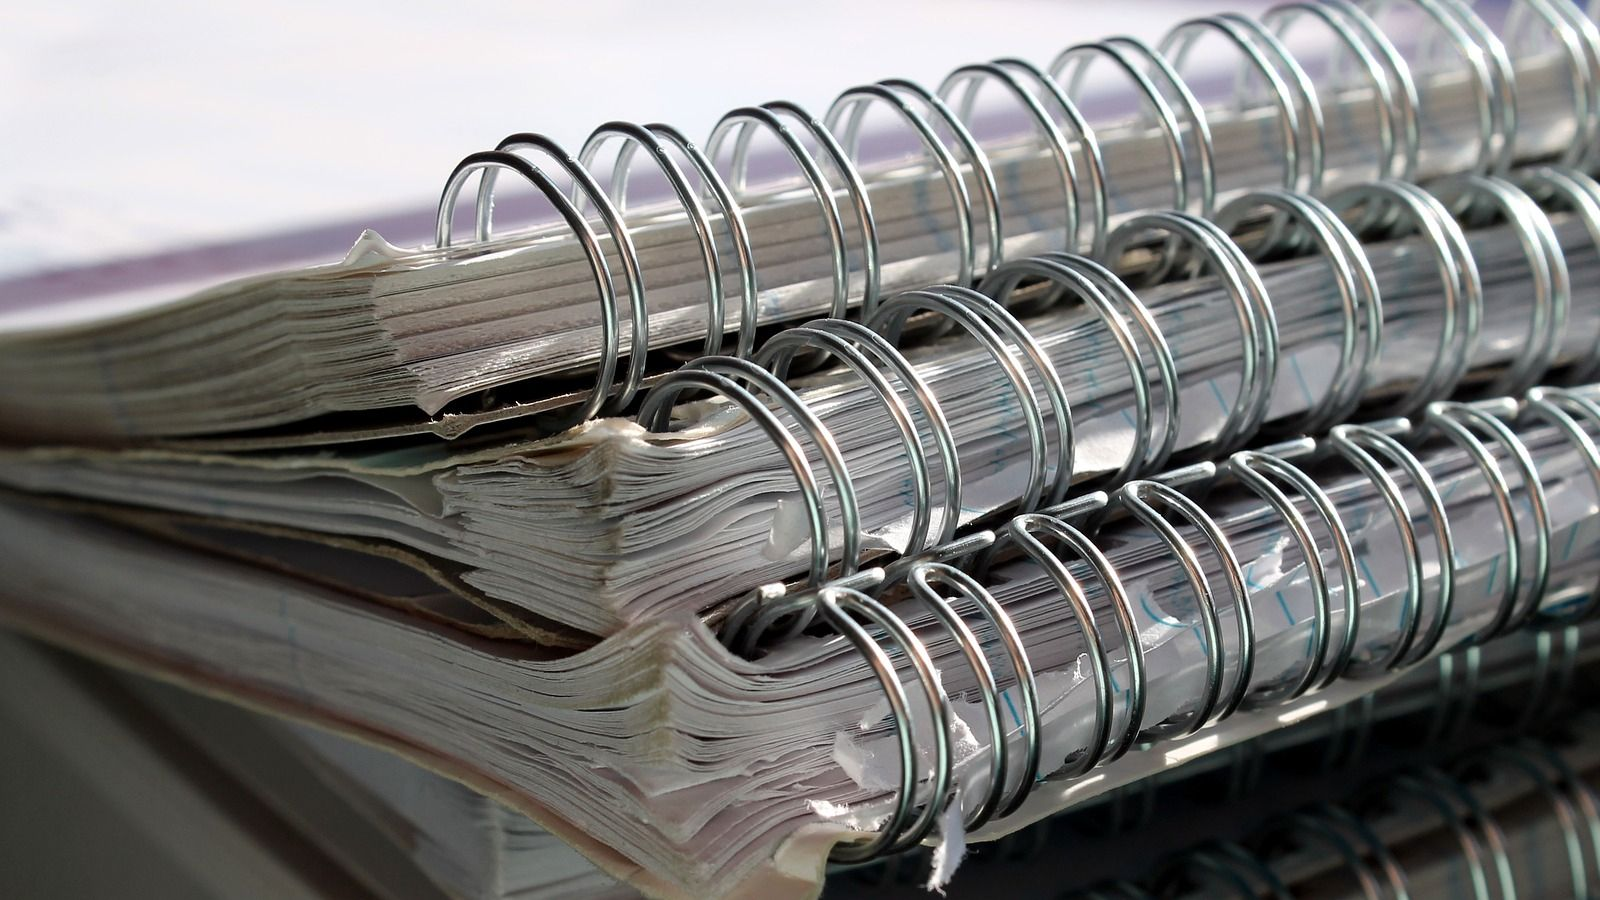 Stack of spiral notebooks on top of each other  banner image